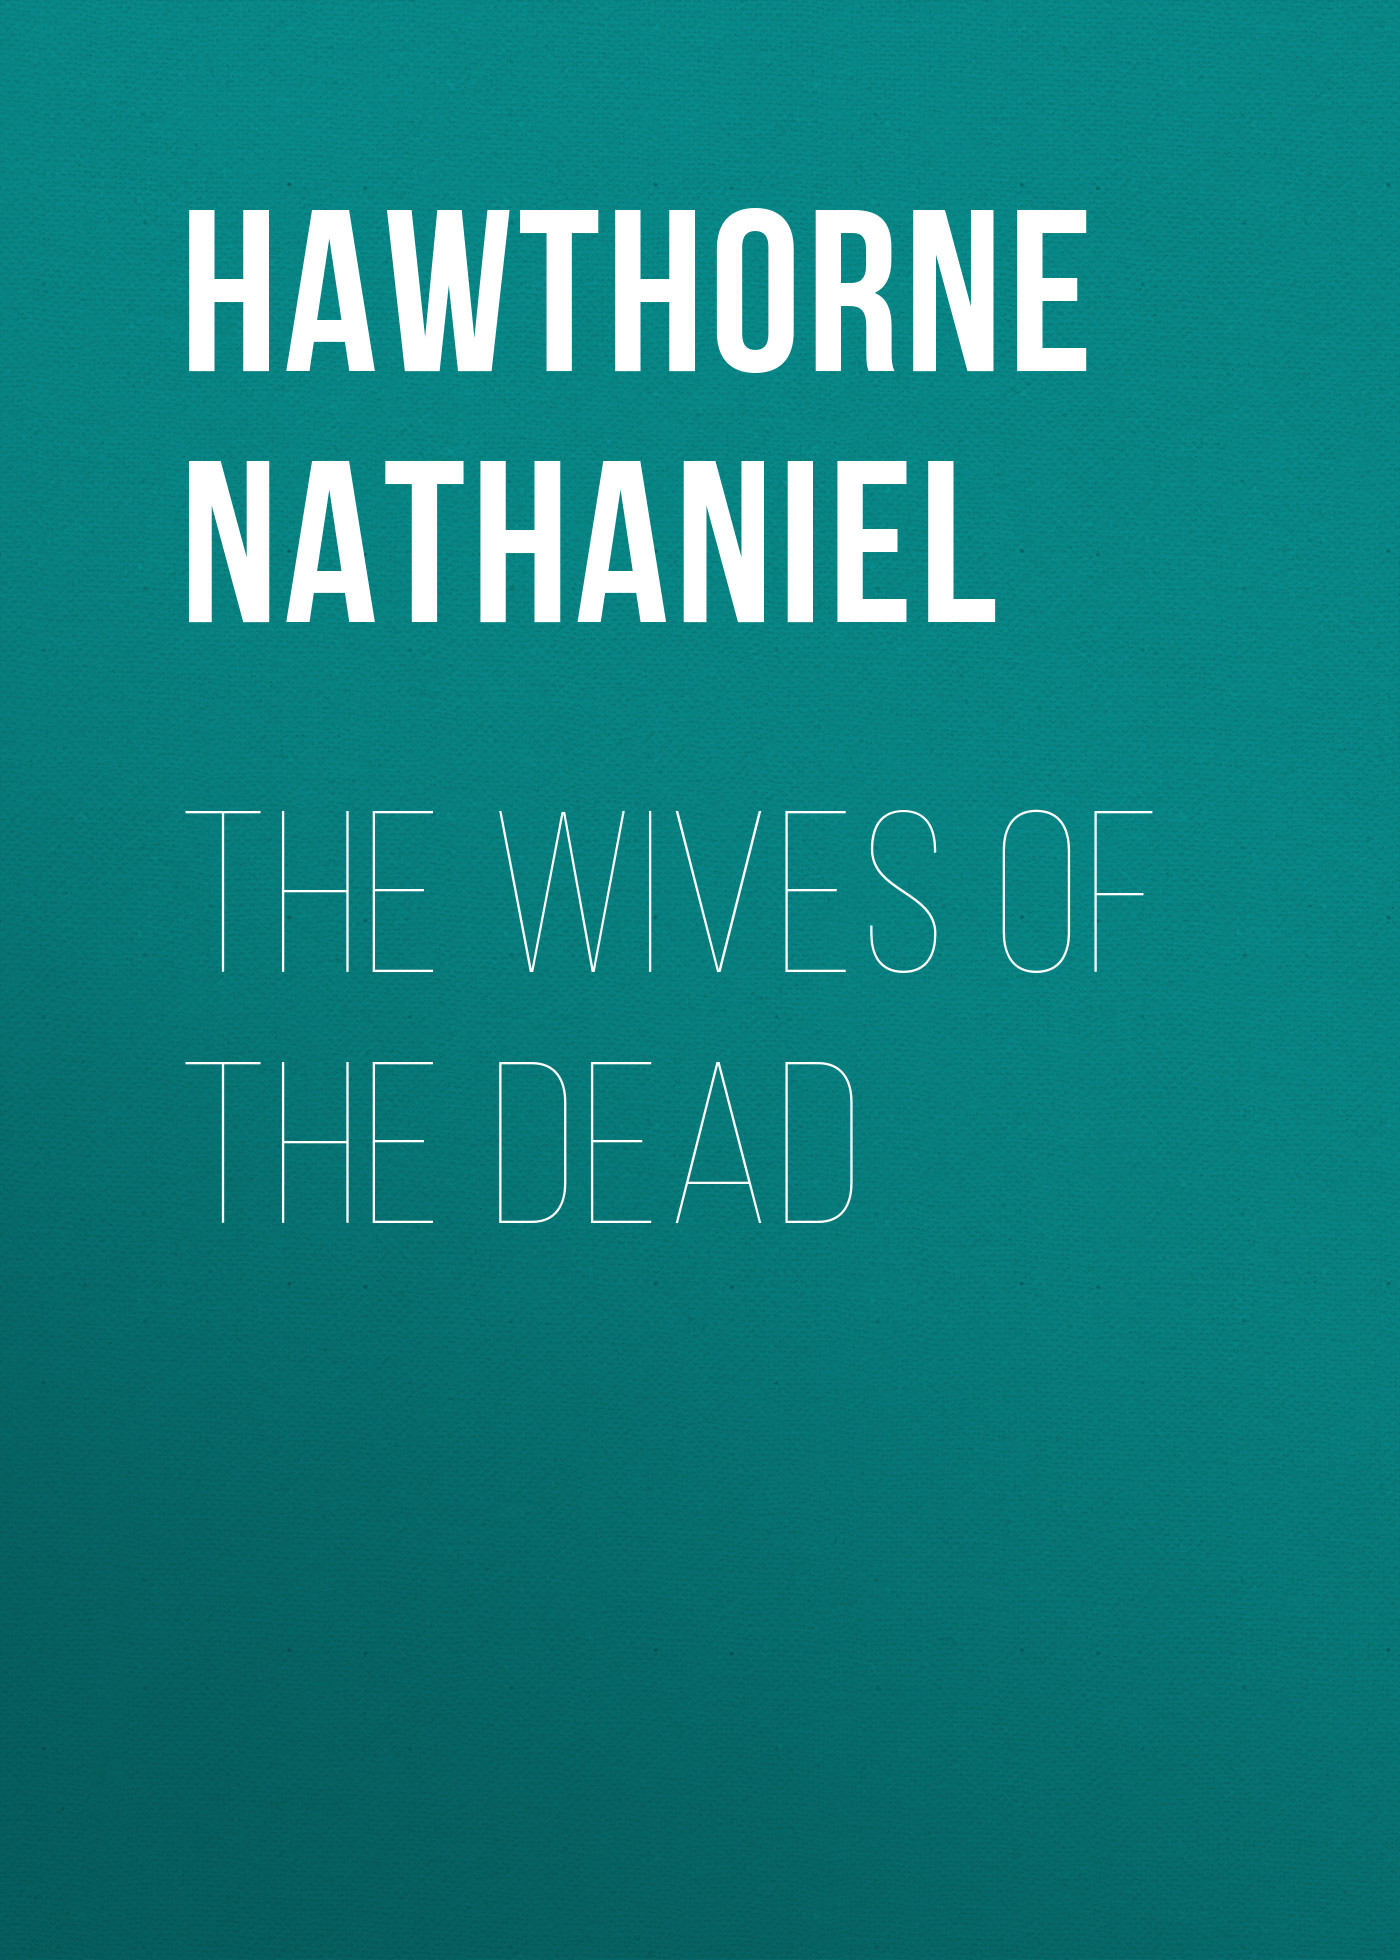 Hawthorne Nathaniel The Wives of the Dead moggach deborah the ex wives